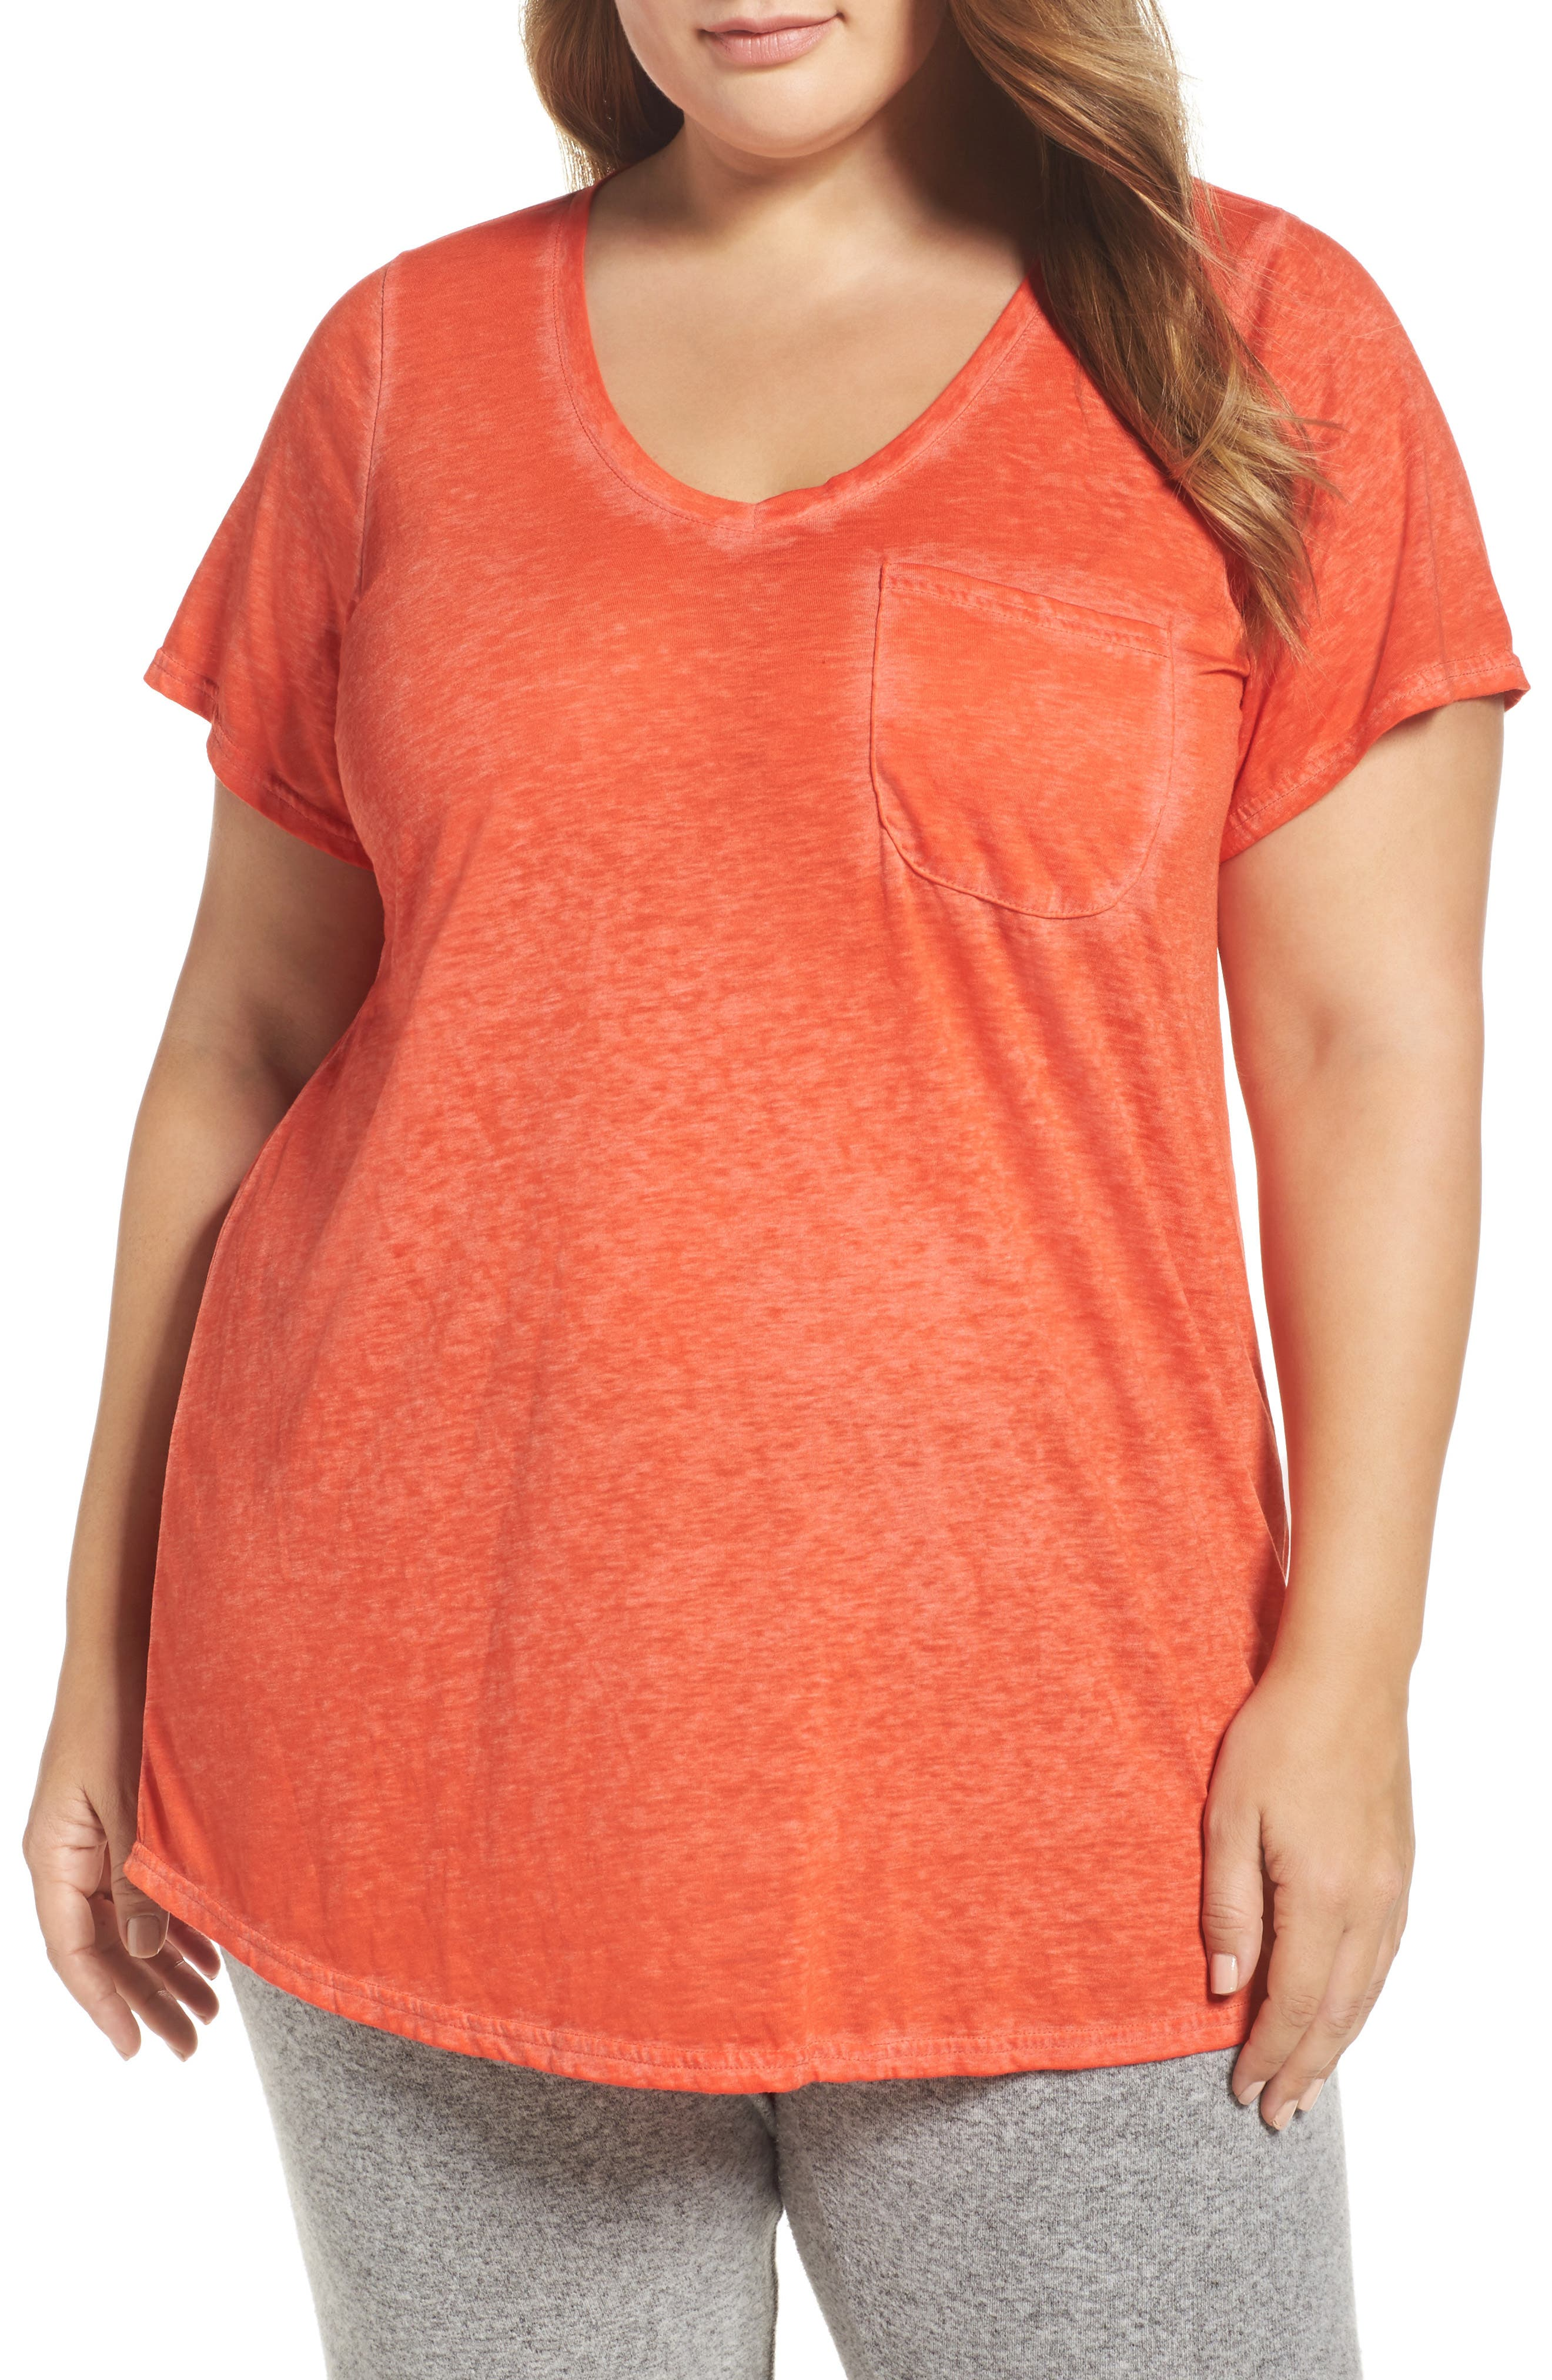 Alternate Image 1 Selected - Make + Model 'Gotta Have It' V-Neck Tee (Plus Size)